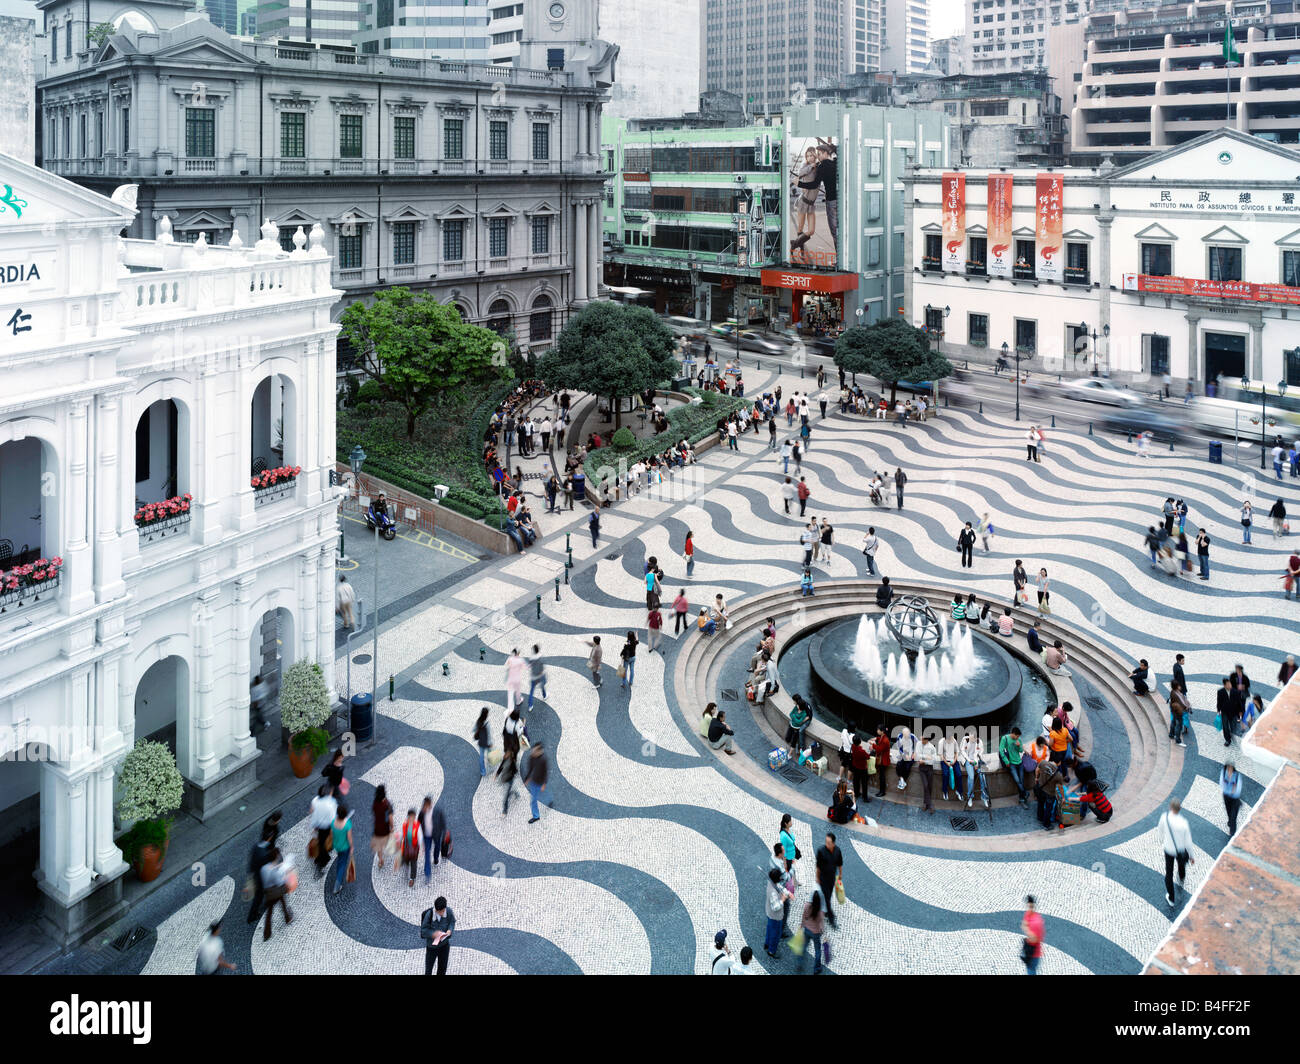 The largo do Senado (Senate Square) facing the Loyal Senate located in Central Macau. Stock Photo